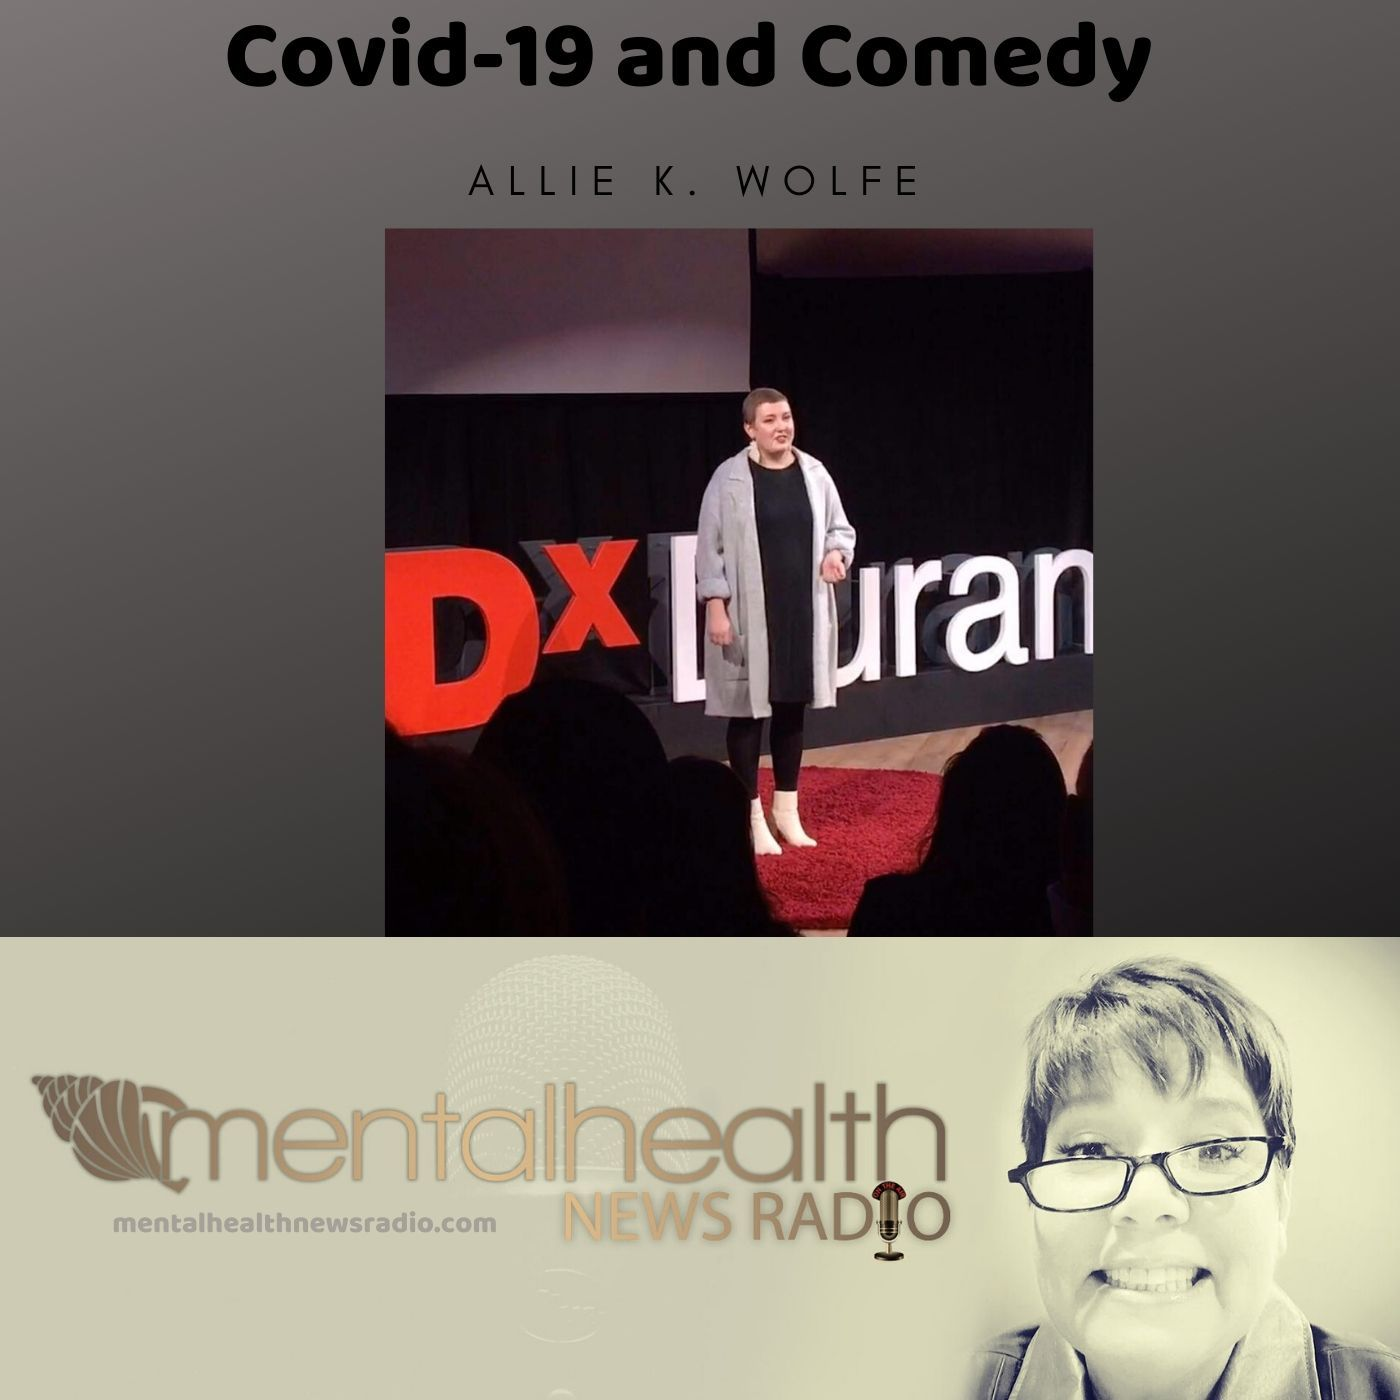 Mental Health News Radio - Covid-19 and Comedy with Allie K. Wolfe